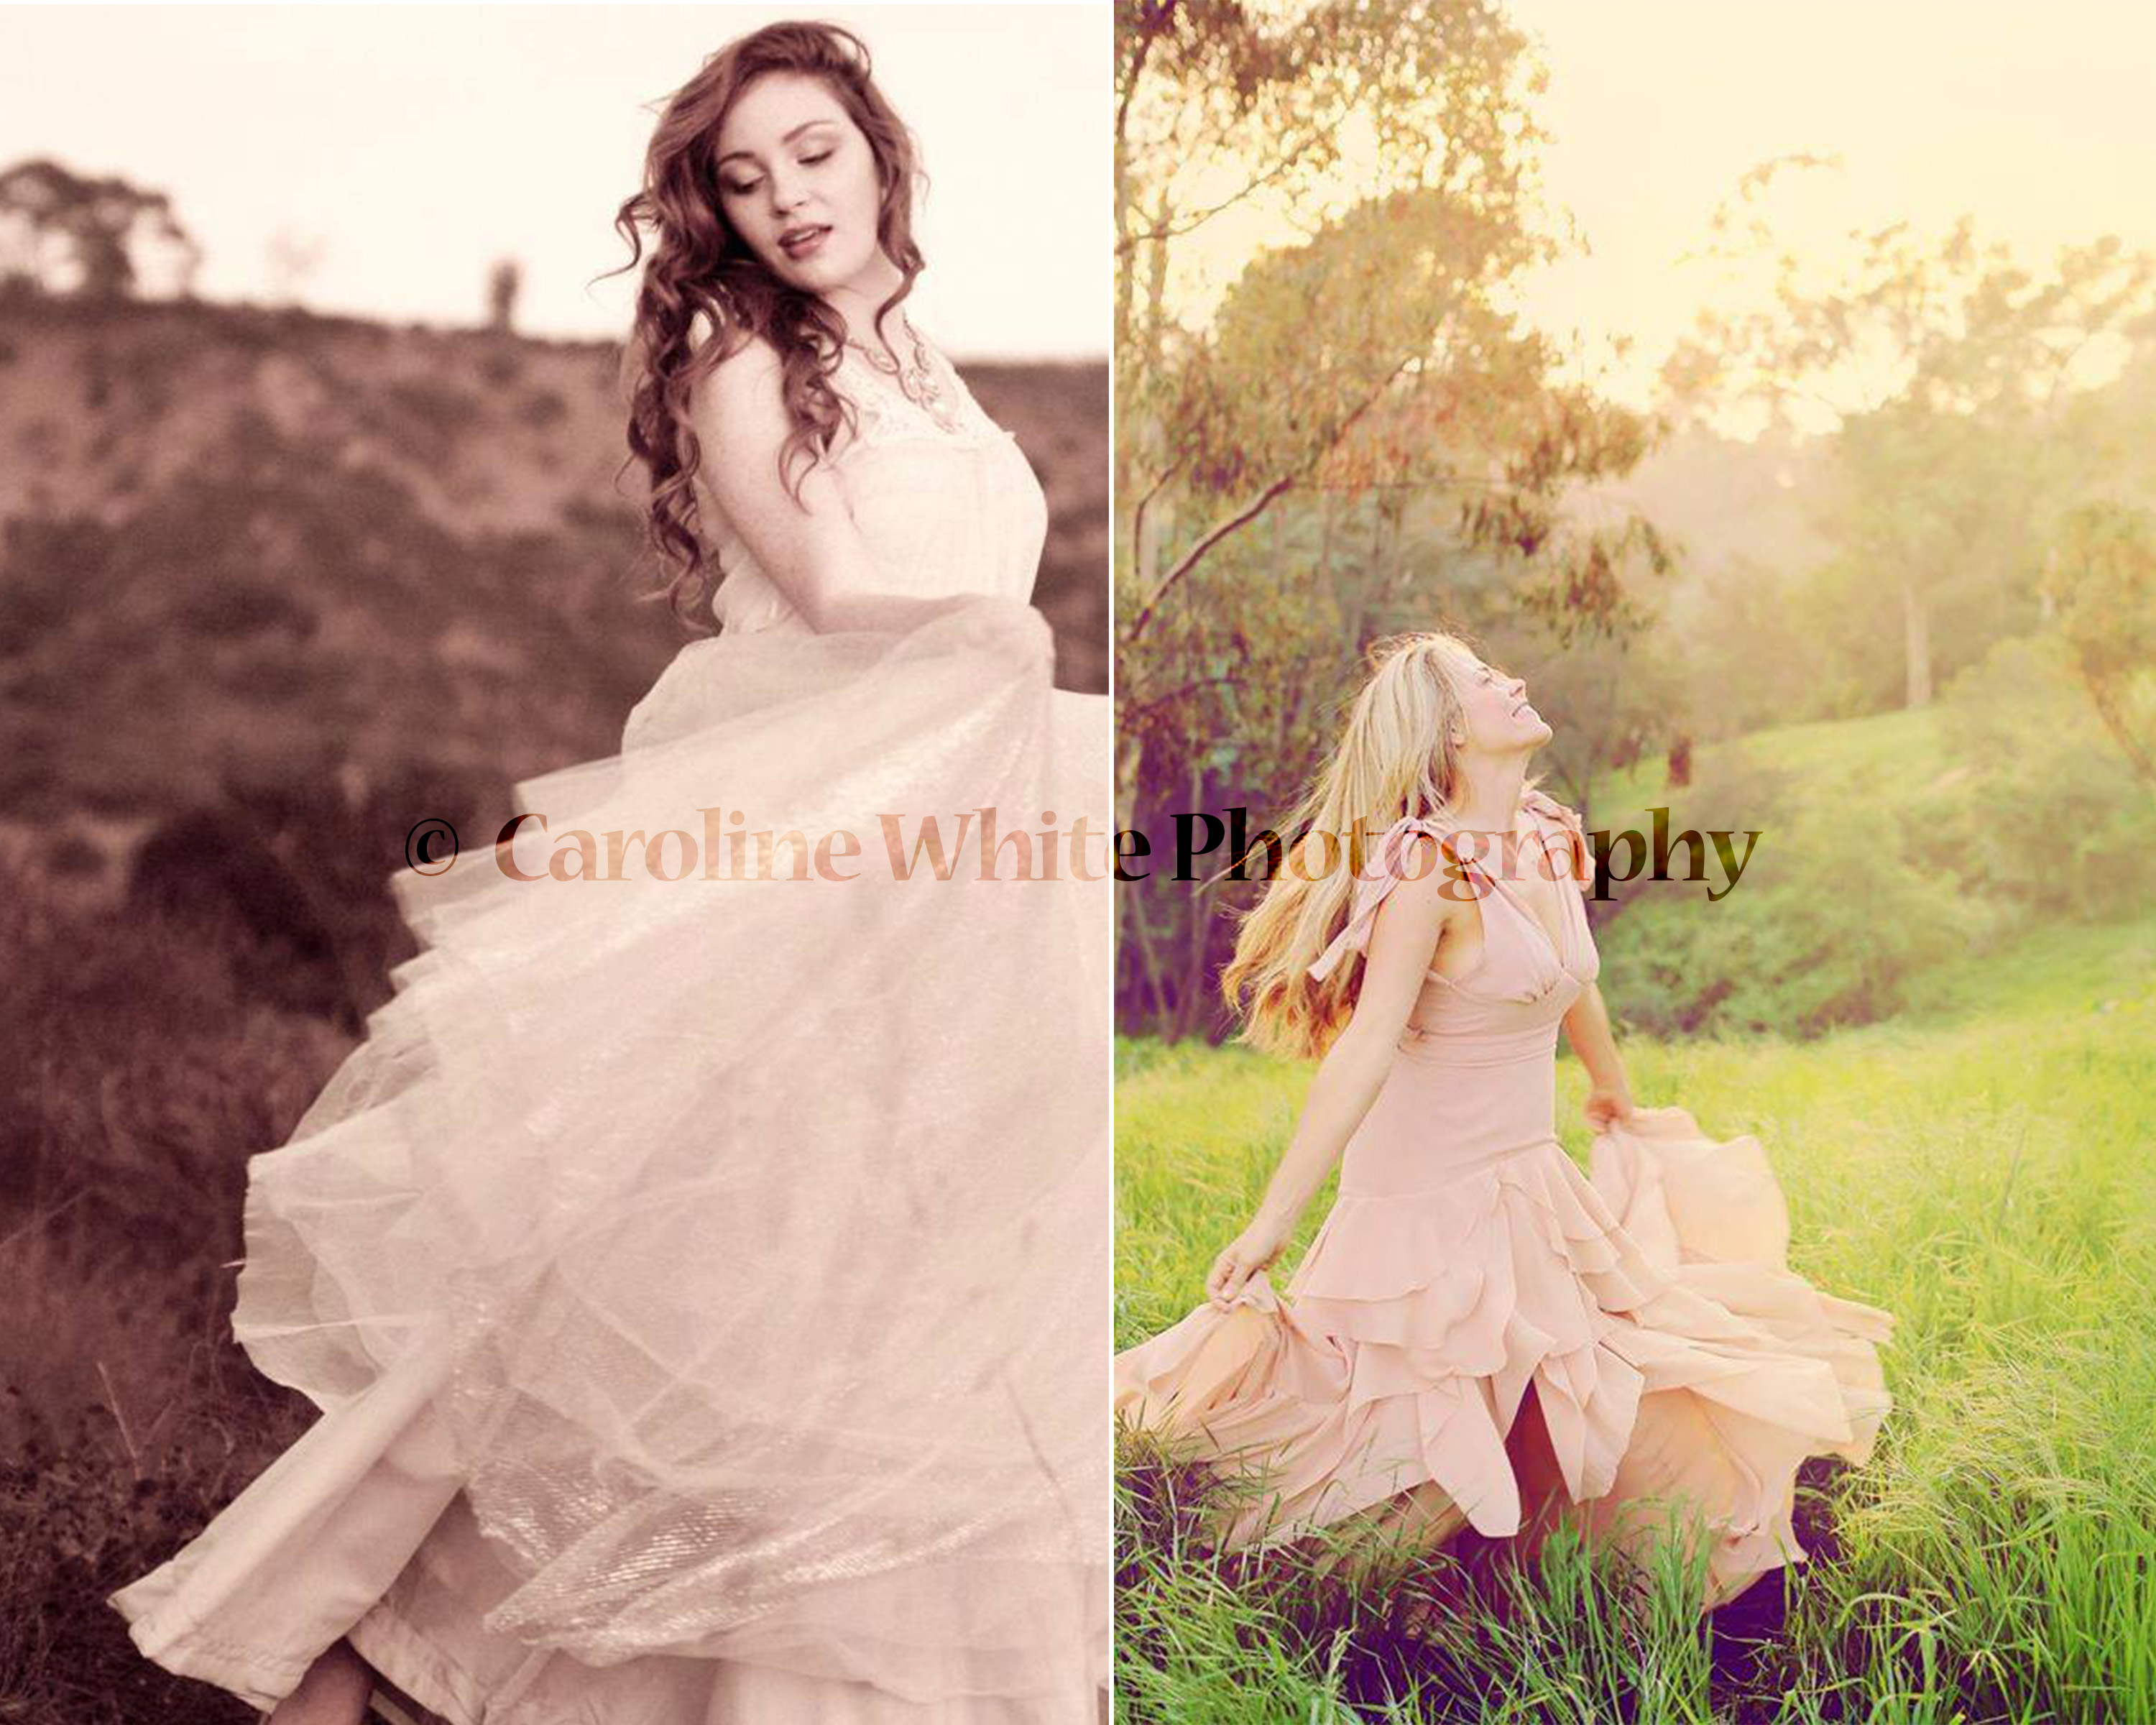 caroline white photography